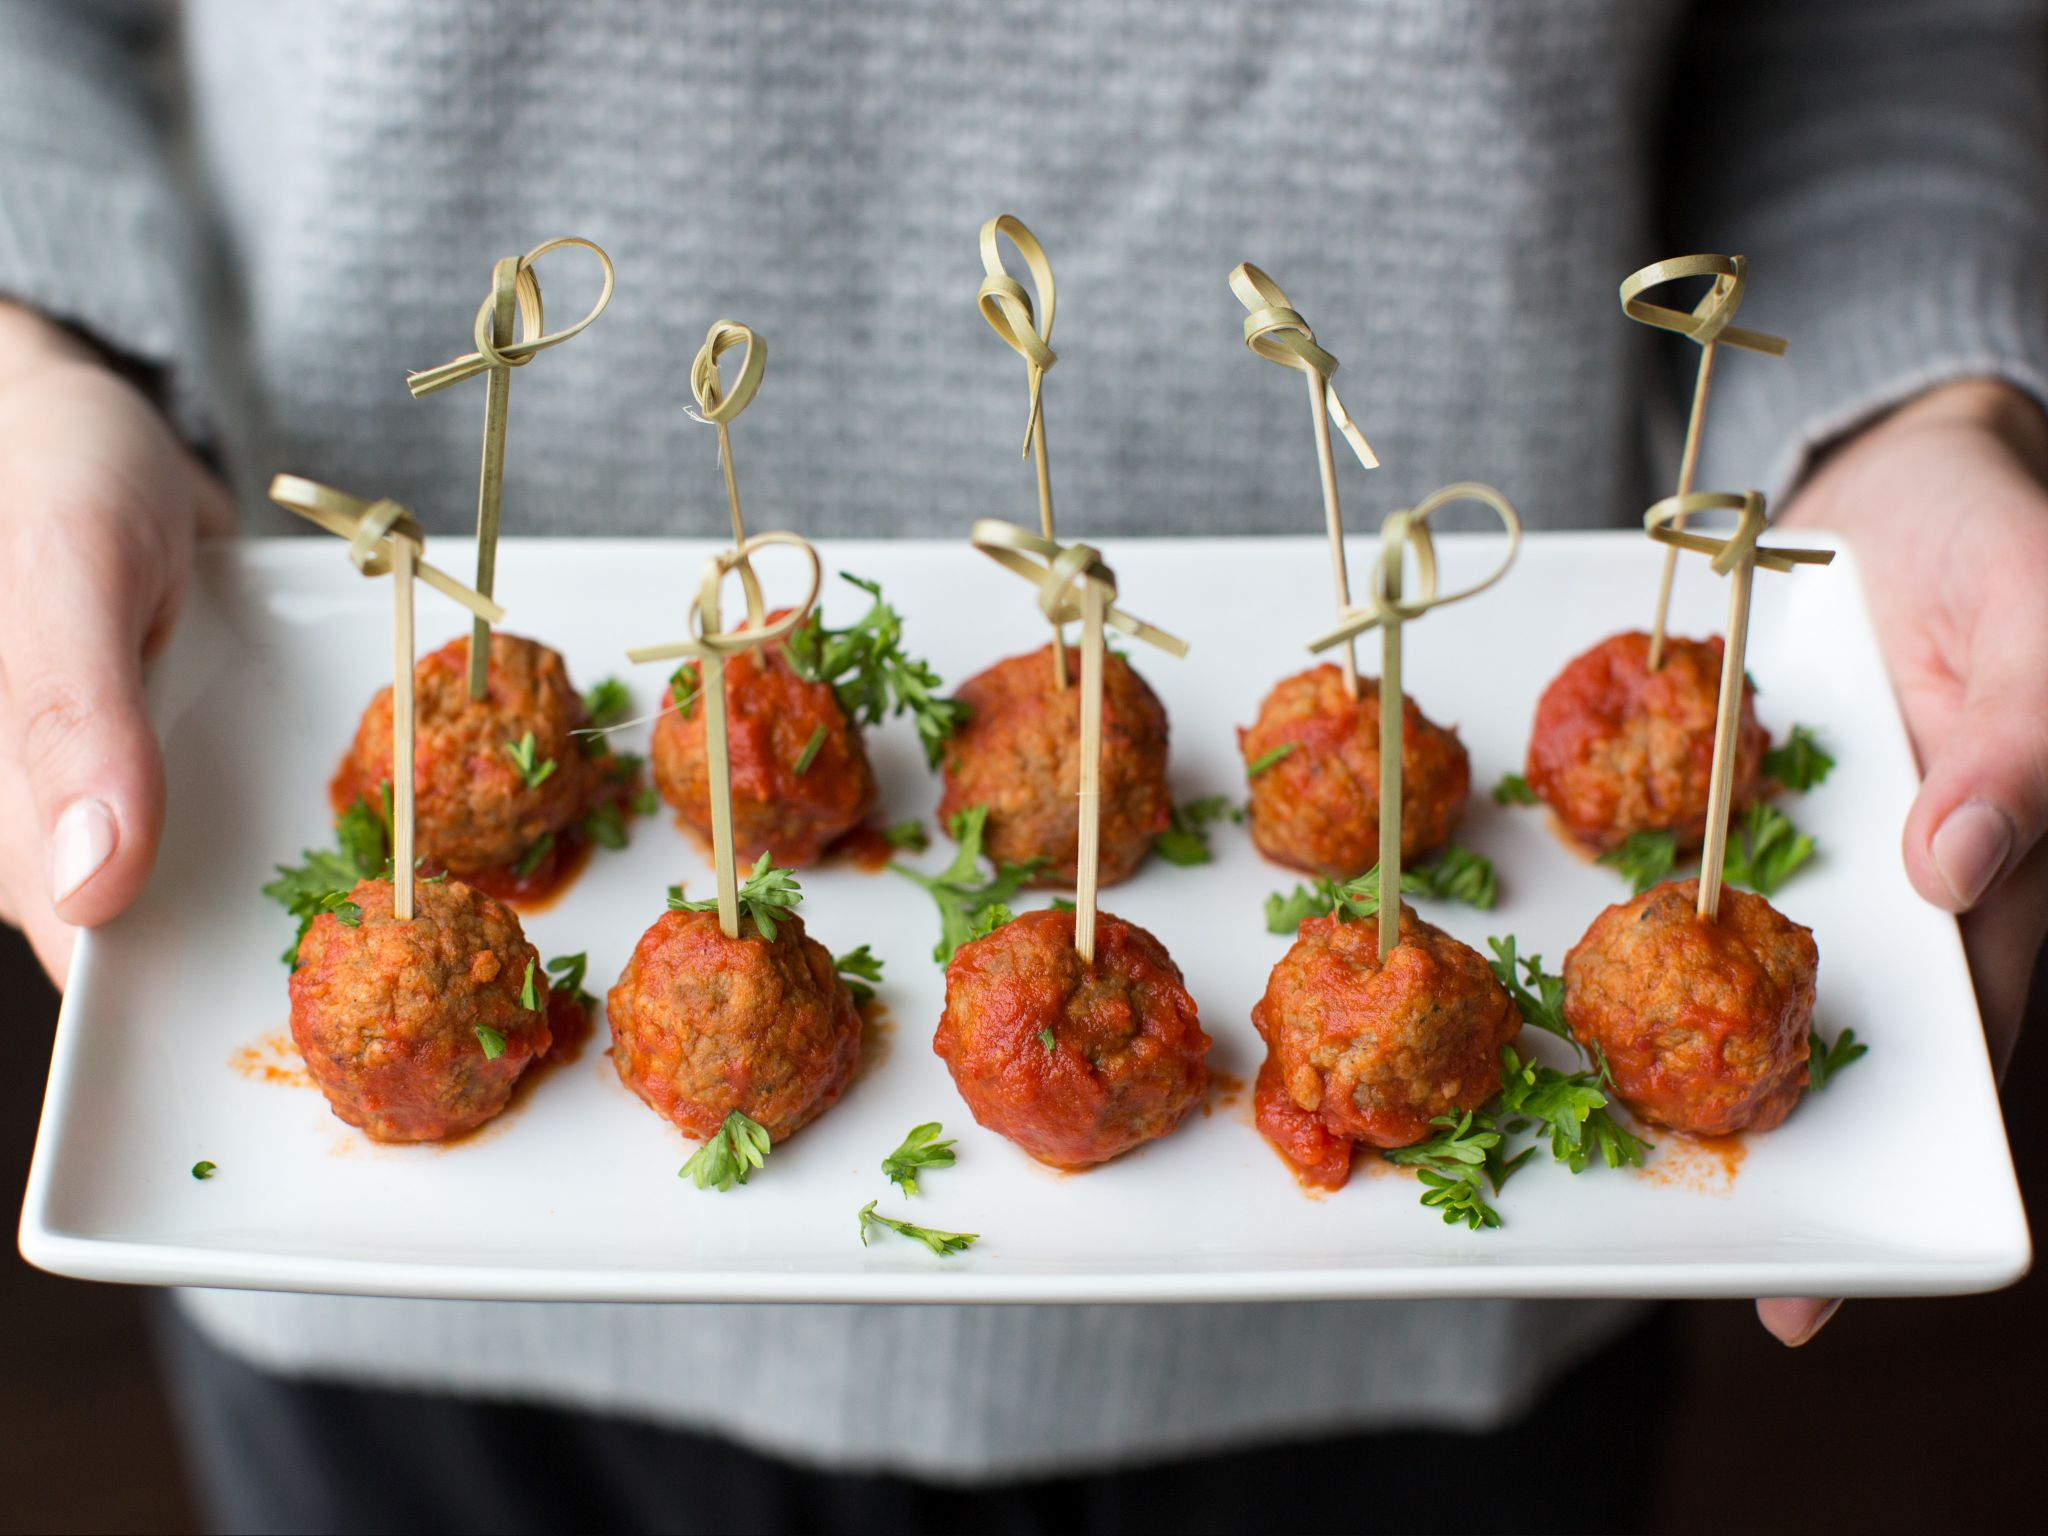 Turkey meatballs archives good food channel delicious healthy turkey meatballs cooking tips forumfinder Image collections